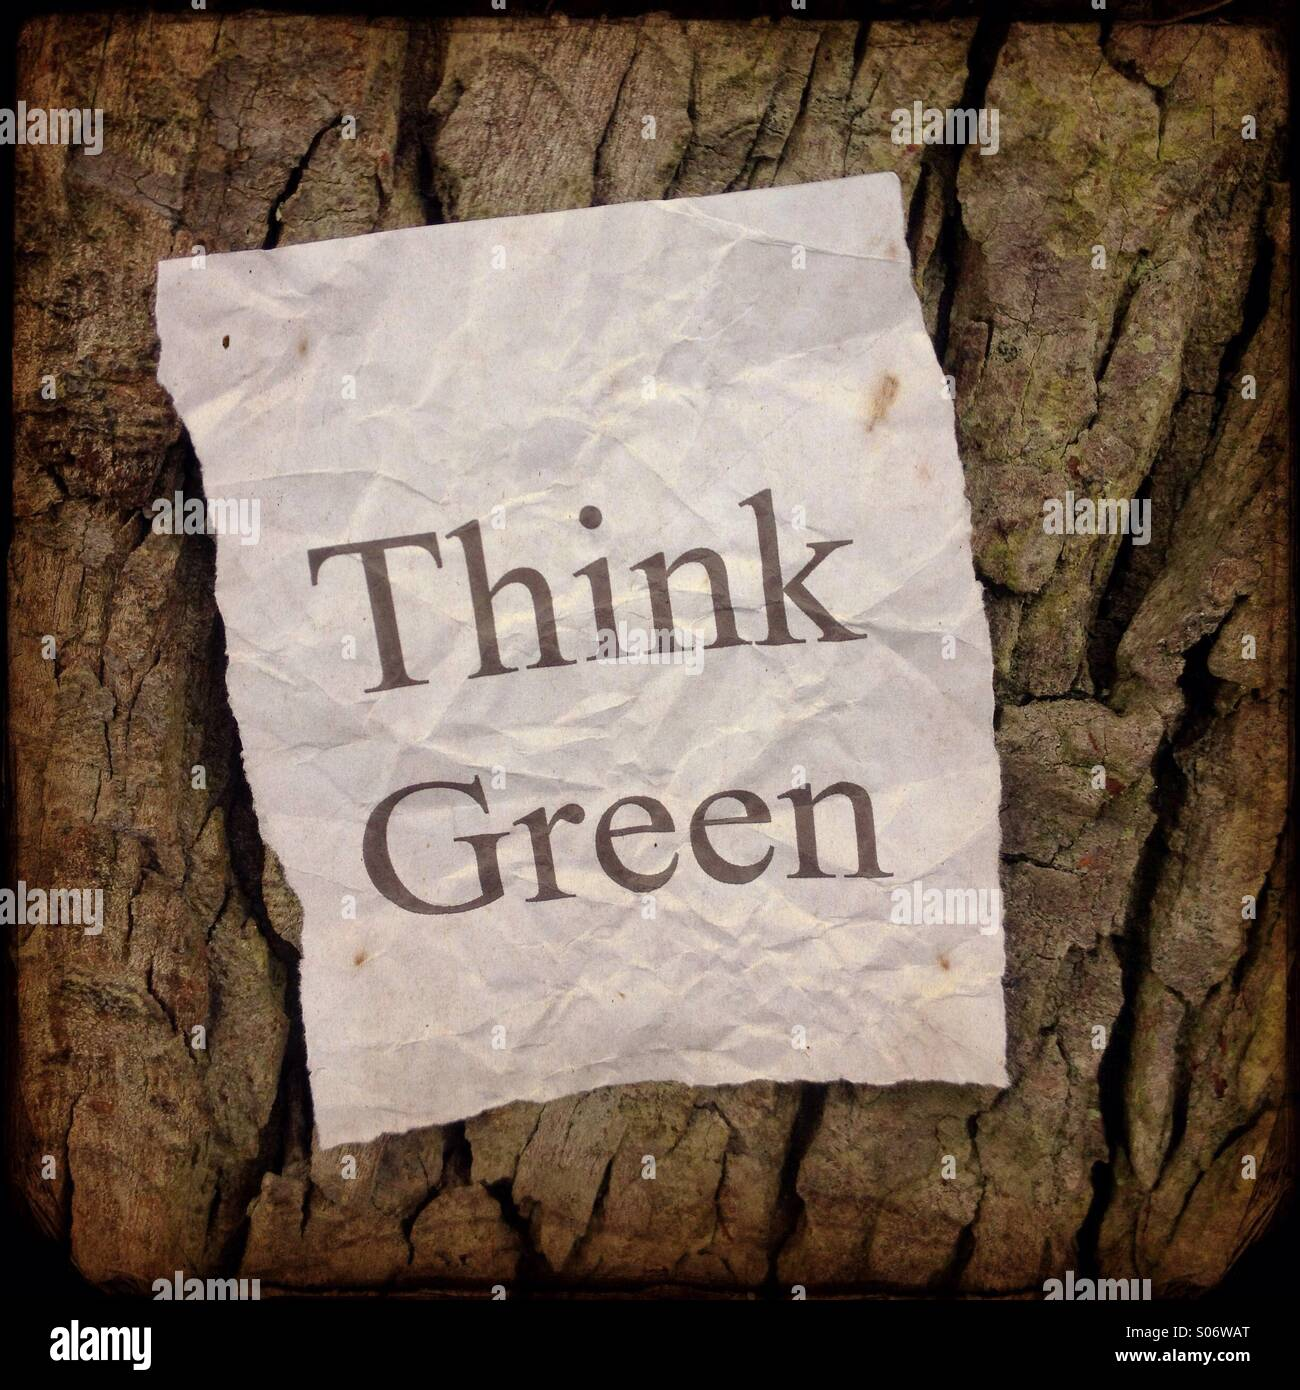 Think Green message on a crumpled paper notice posted on tree bark. A reminder for environmental impact - Stock Image